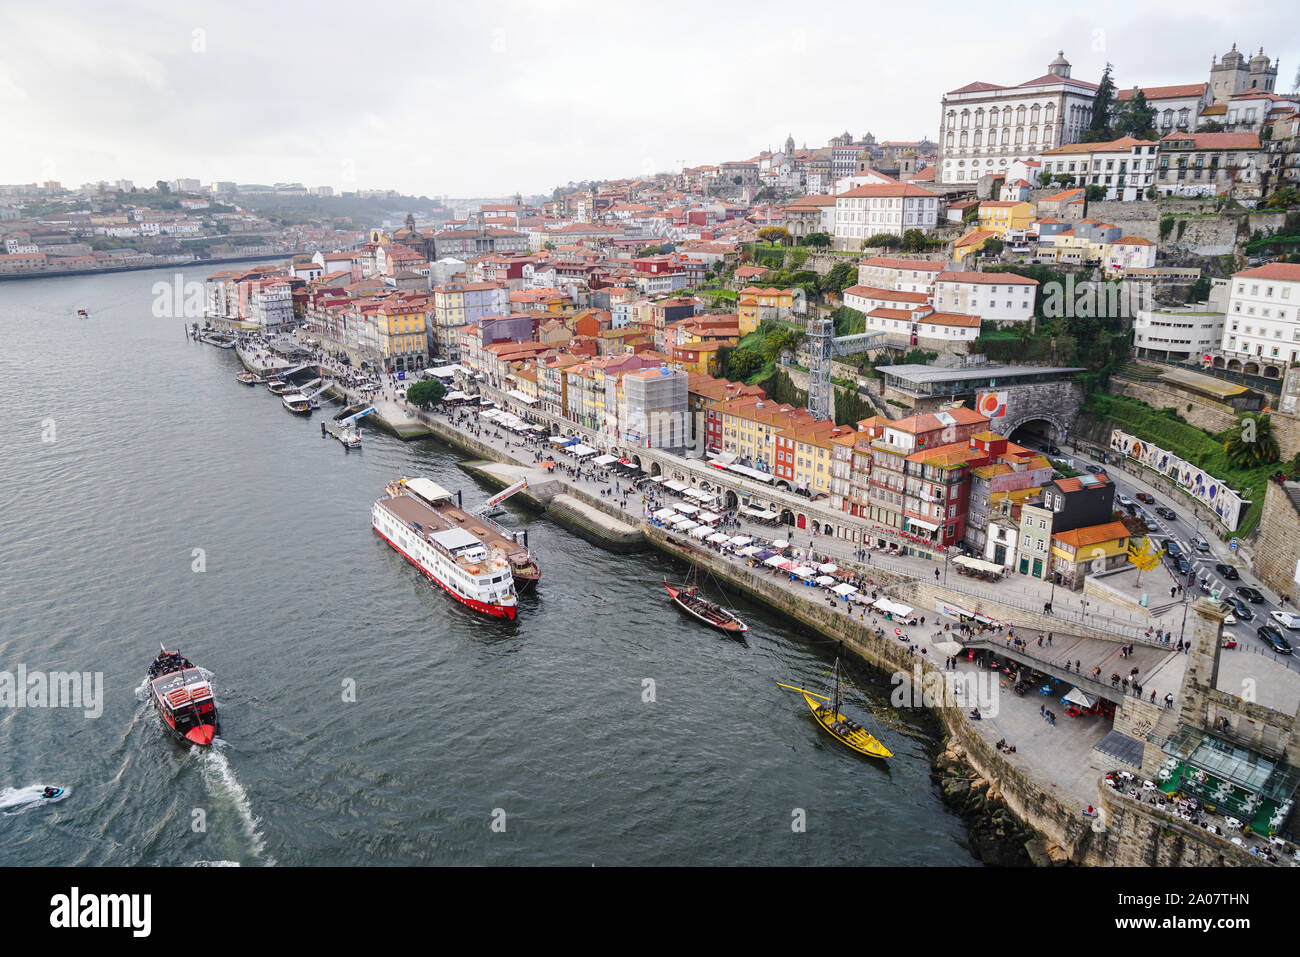 Porto, Portugal - December 2018: View of the Ribeira area and the Douro River with several tourist boats. Stock Photo